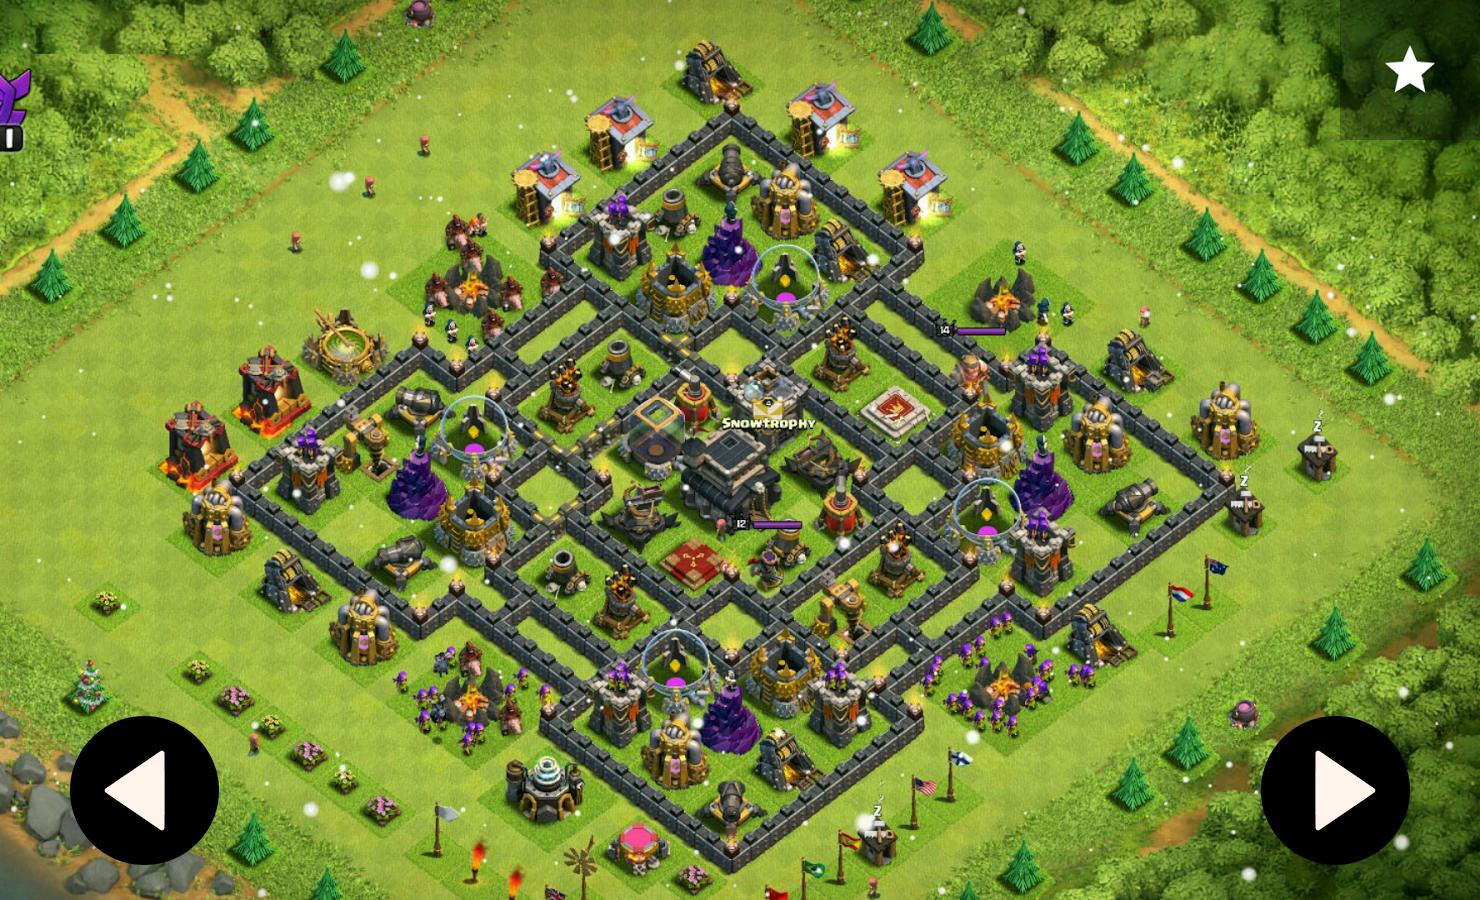 Top New Bases Clash Of Clans for Android - APK Download